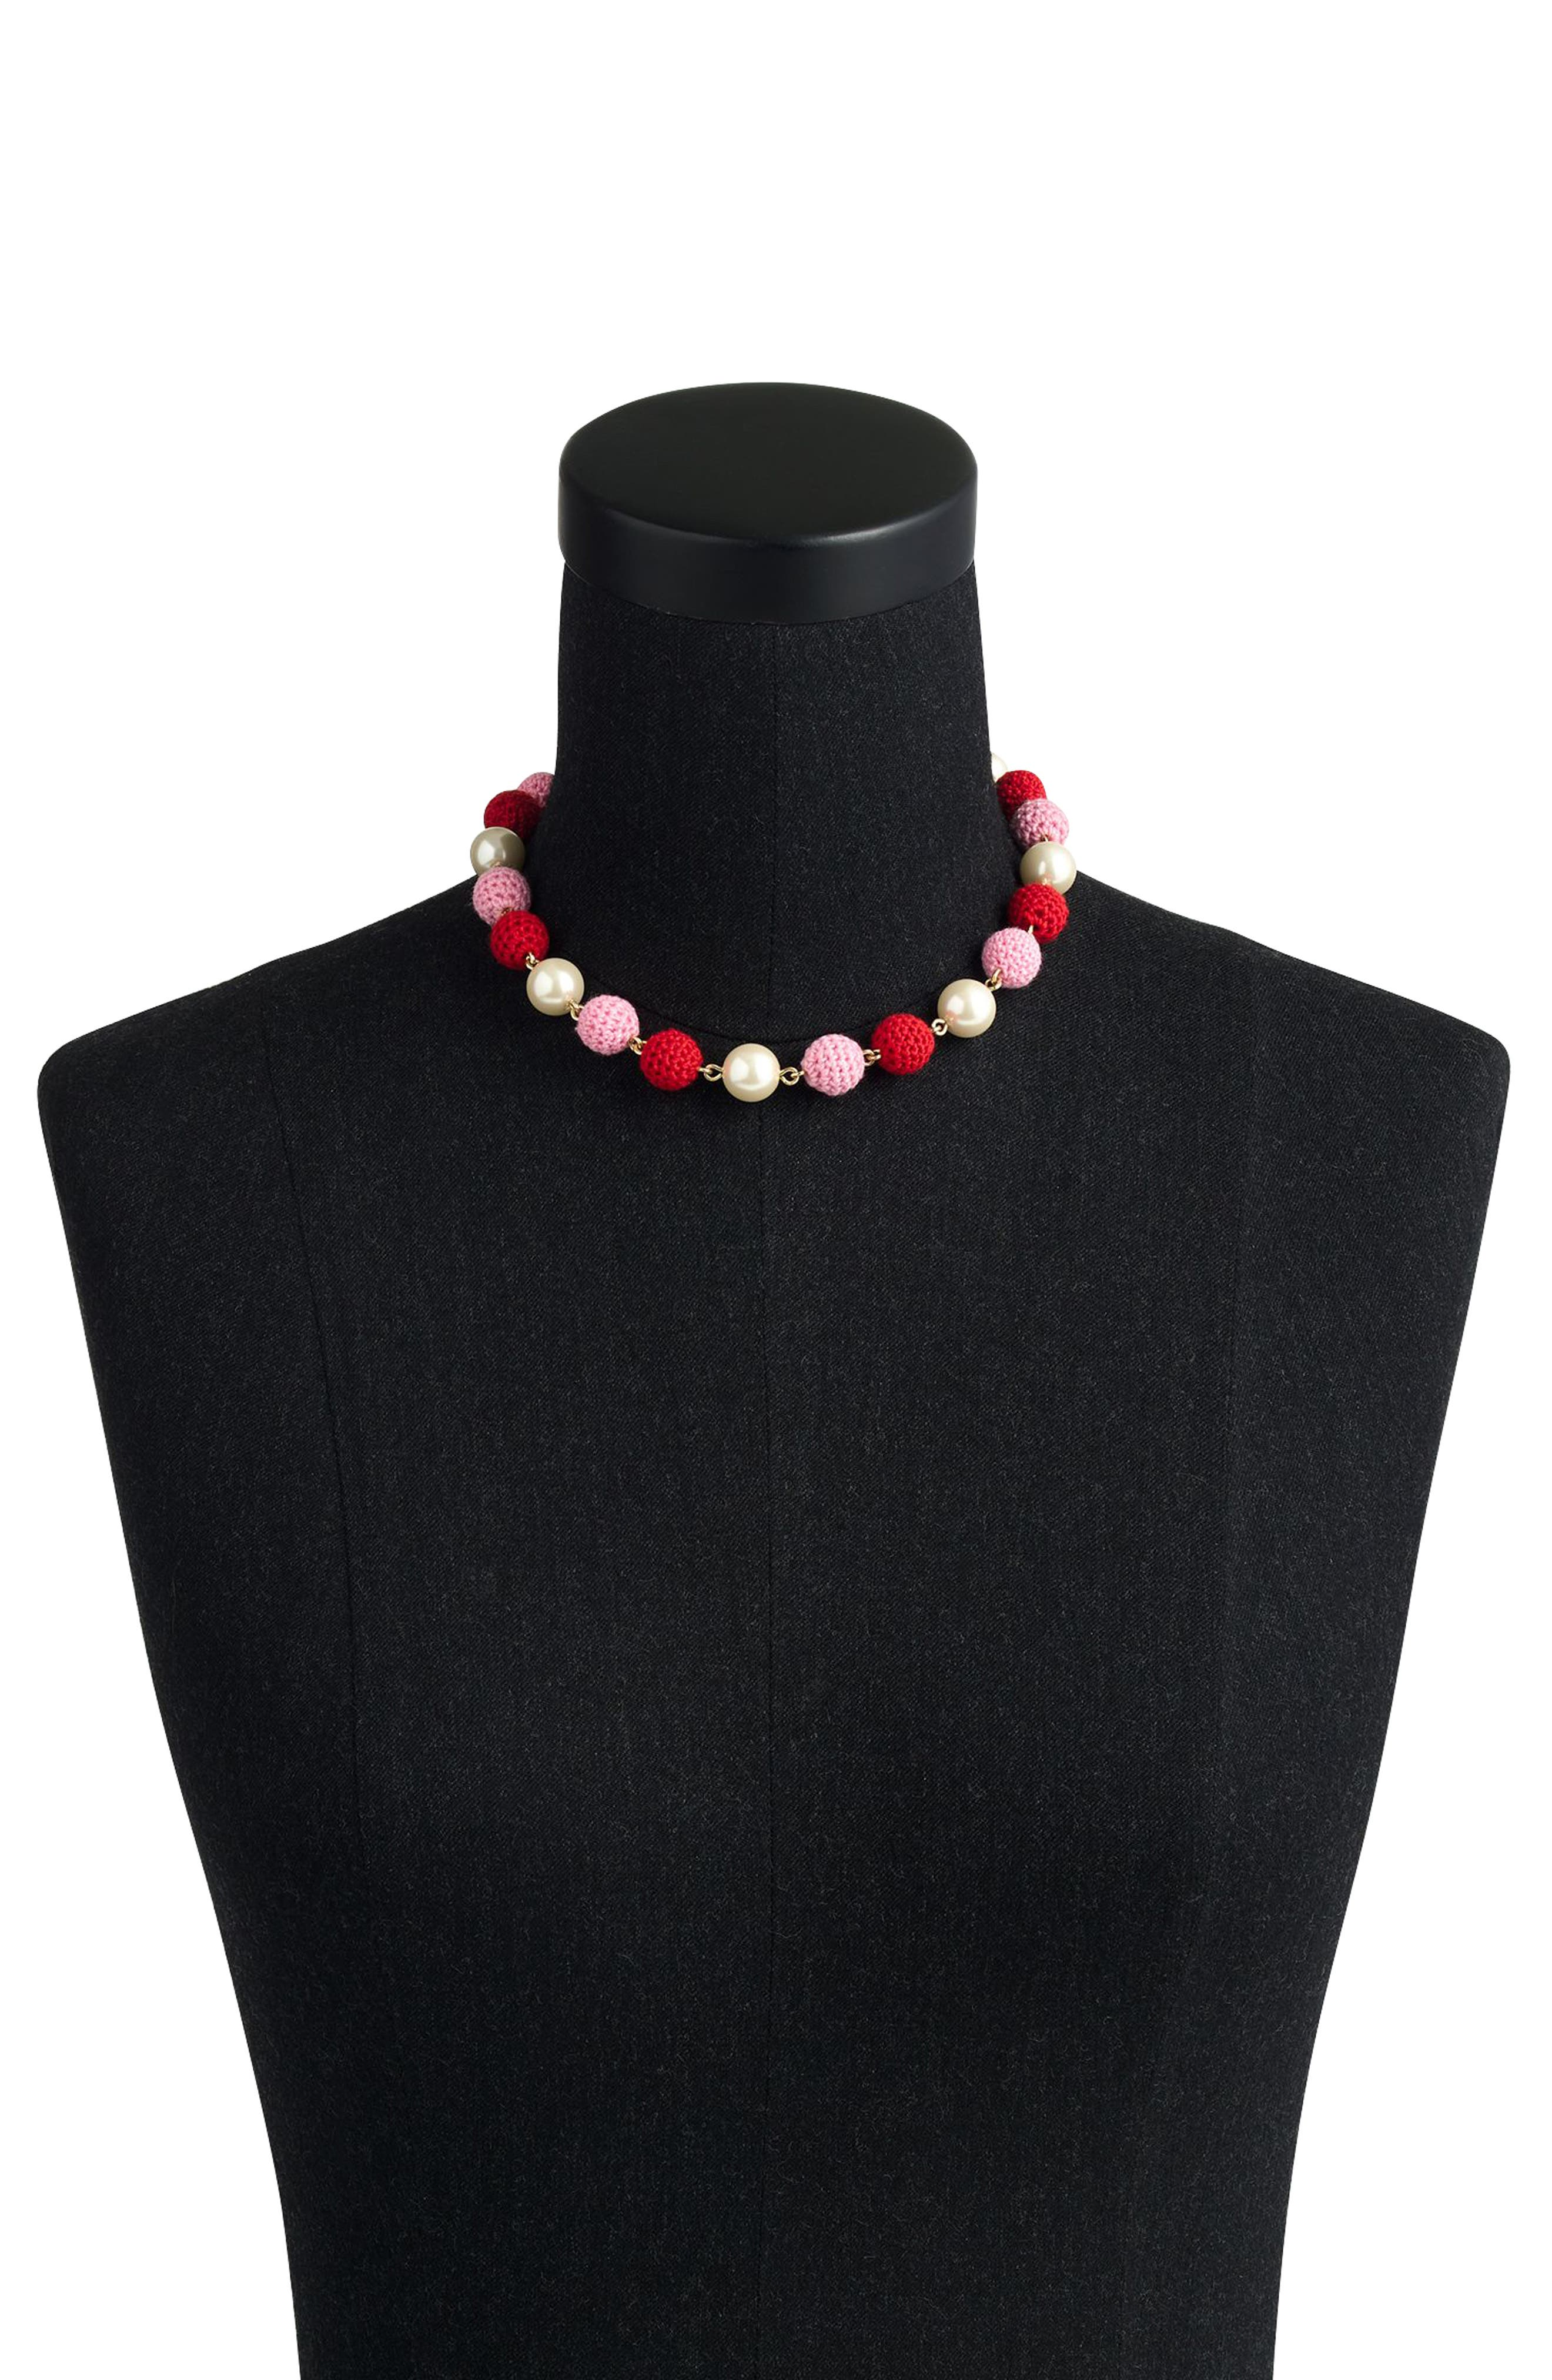 Crochet Bead & Glass Pearl Necklace,                             Alternate thumbnail 2, color,